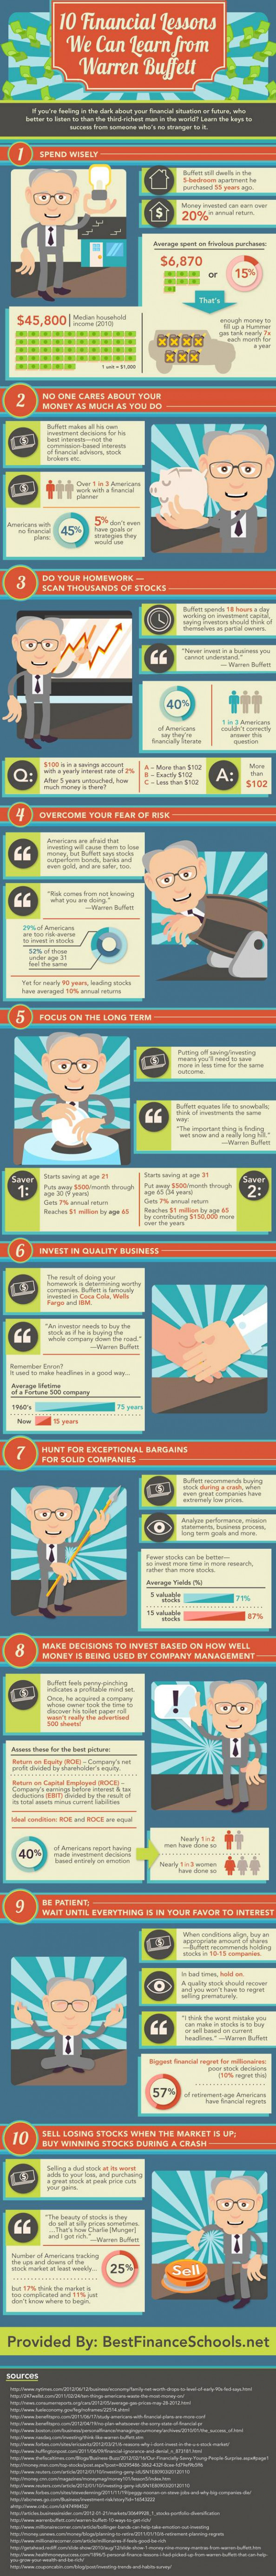 10 Financial Lessons We Can Learn From Warren Buffet Infographic